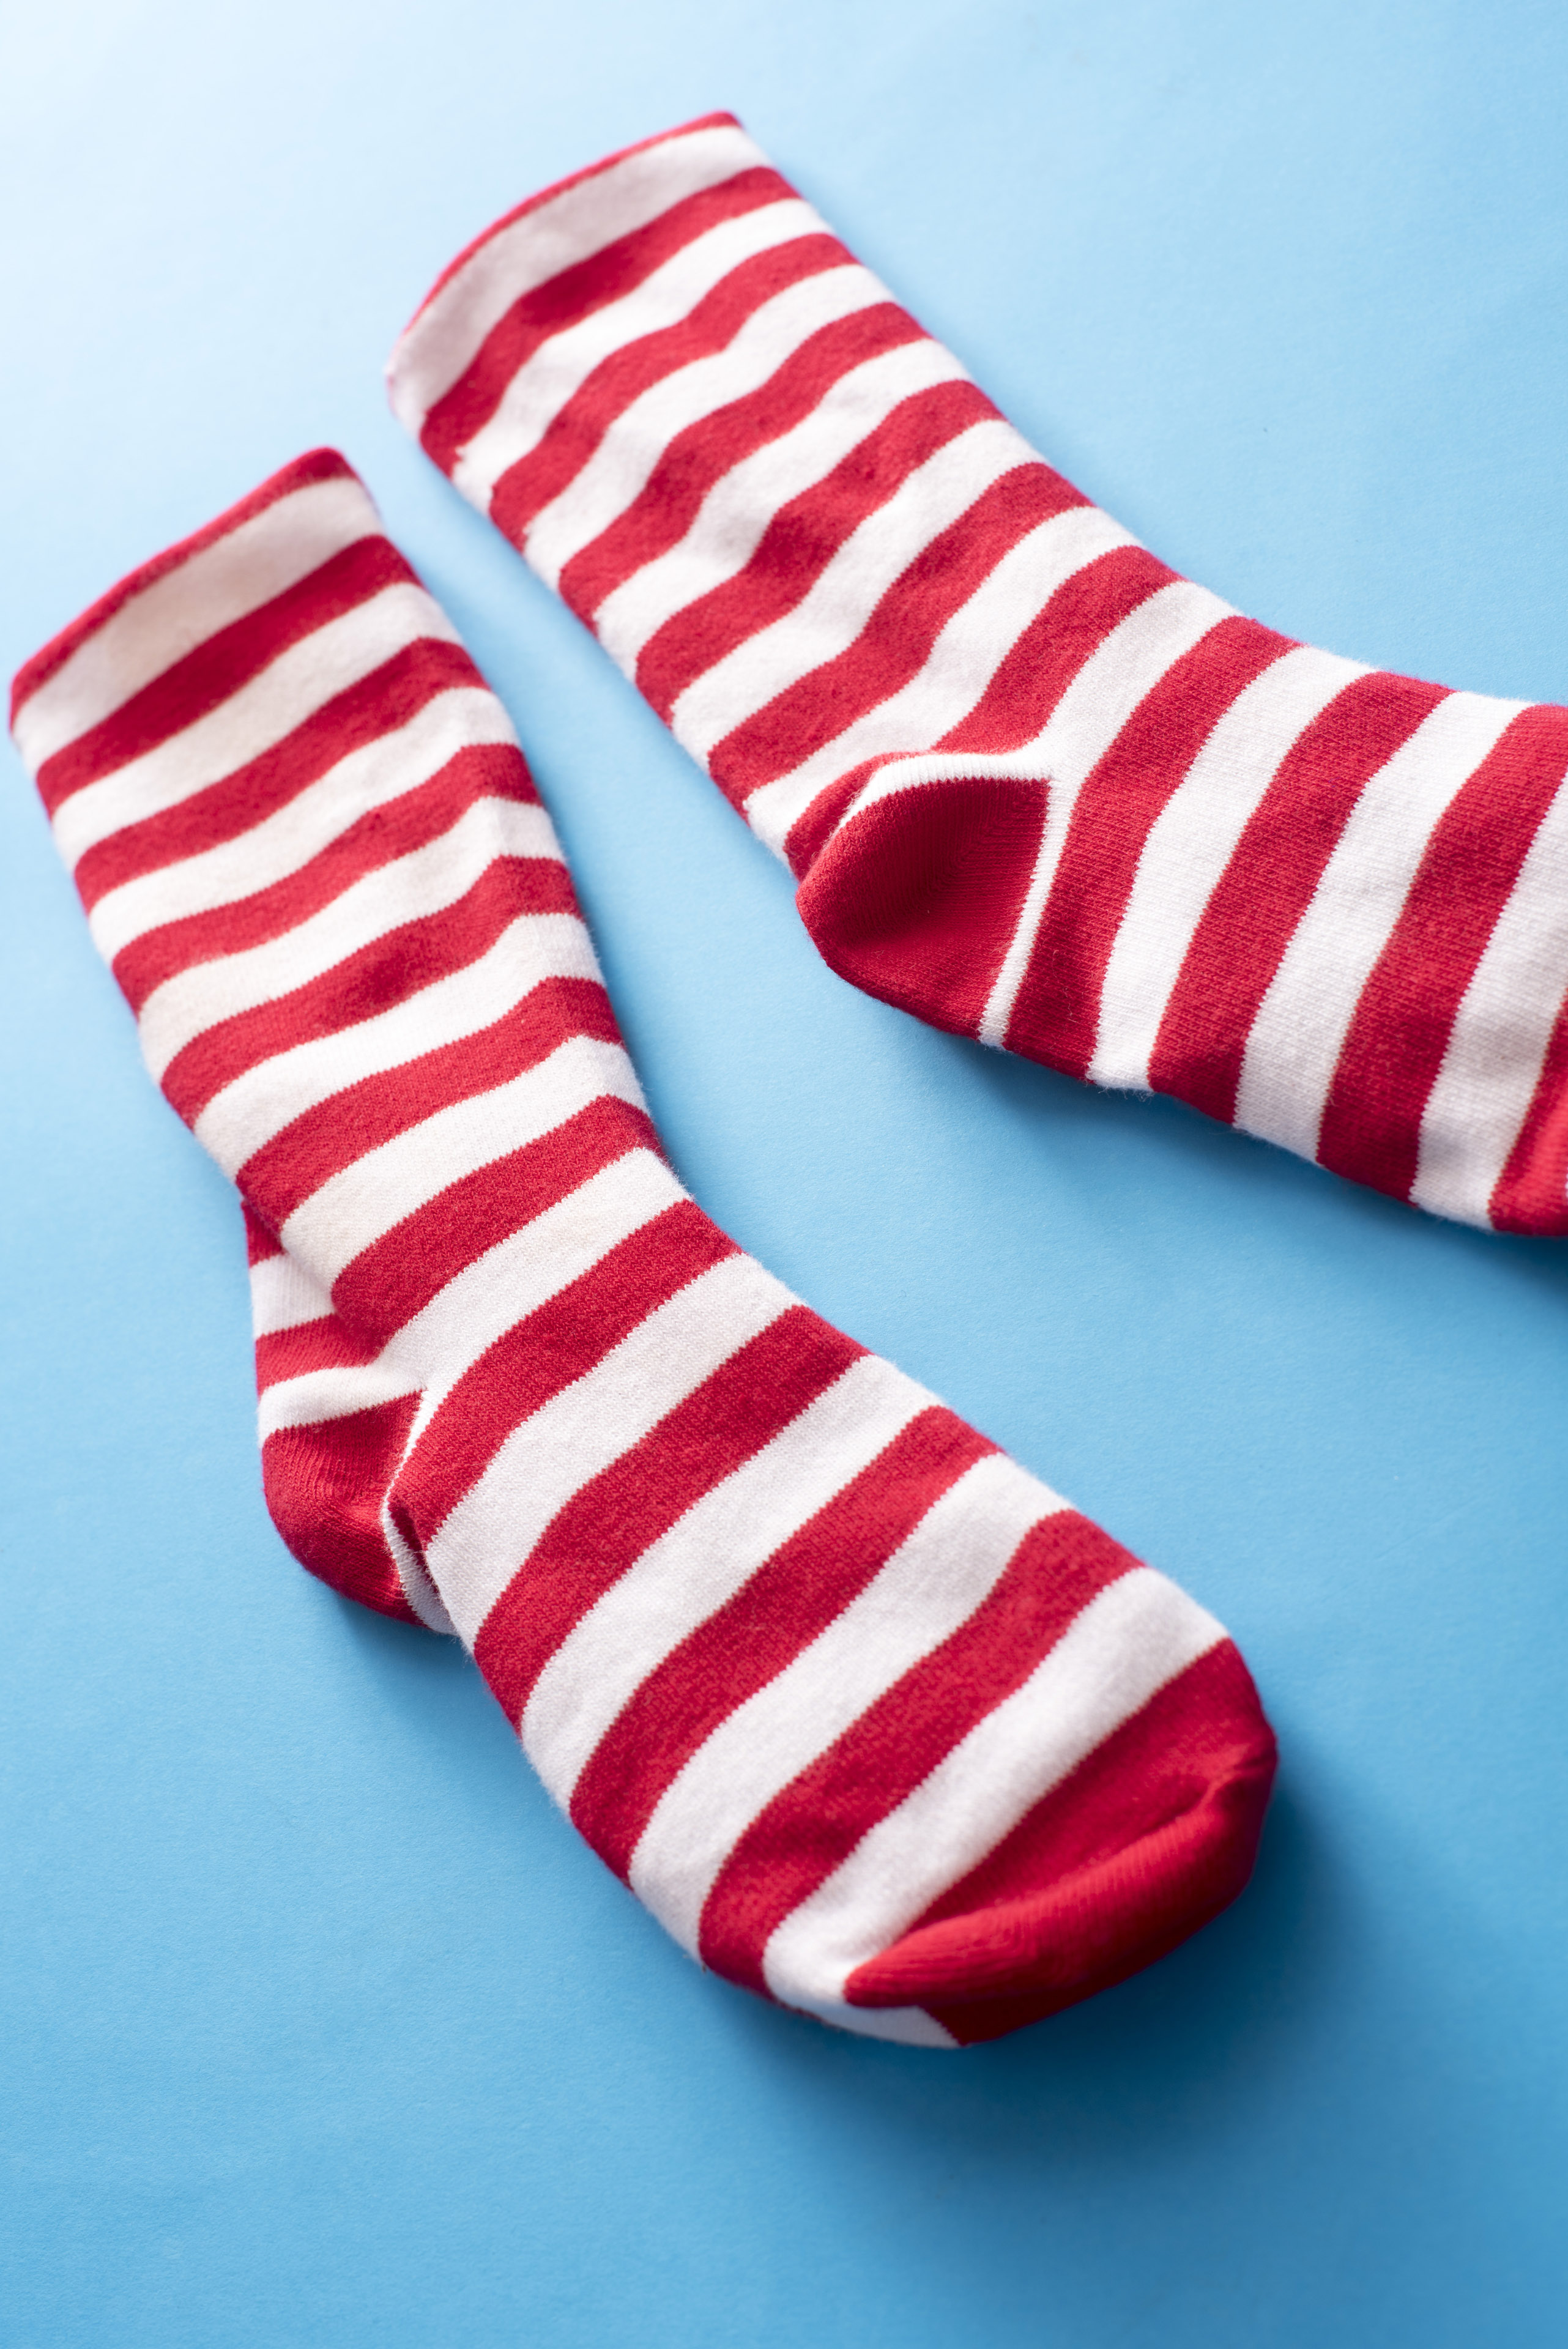 A pair of red and white striped Christmas Santa socks isolated on a plain blue background.